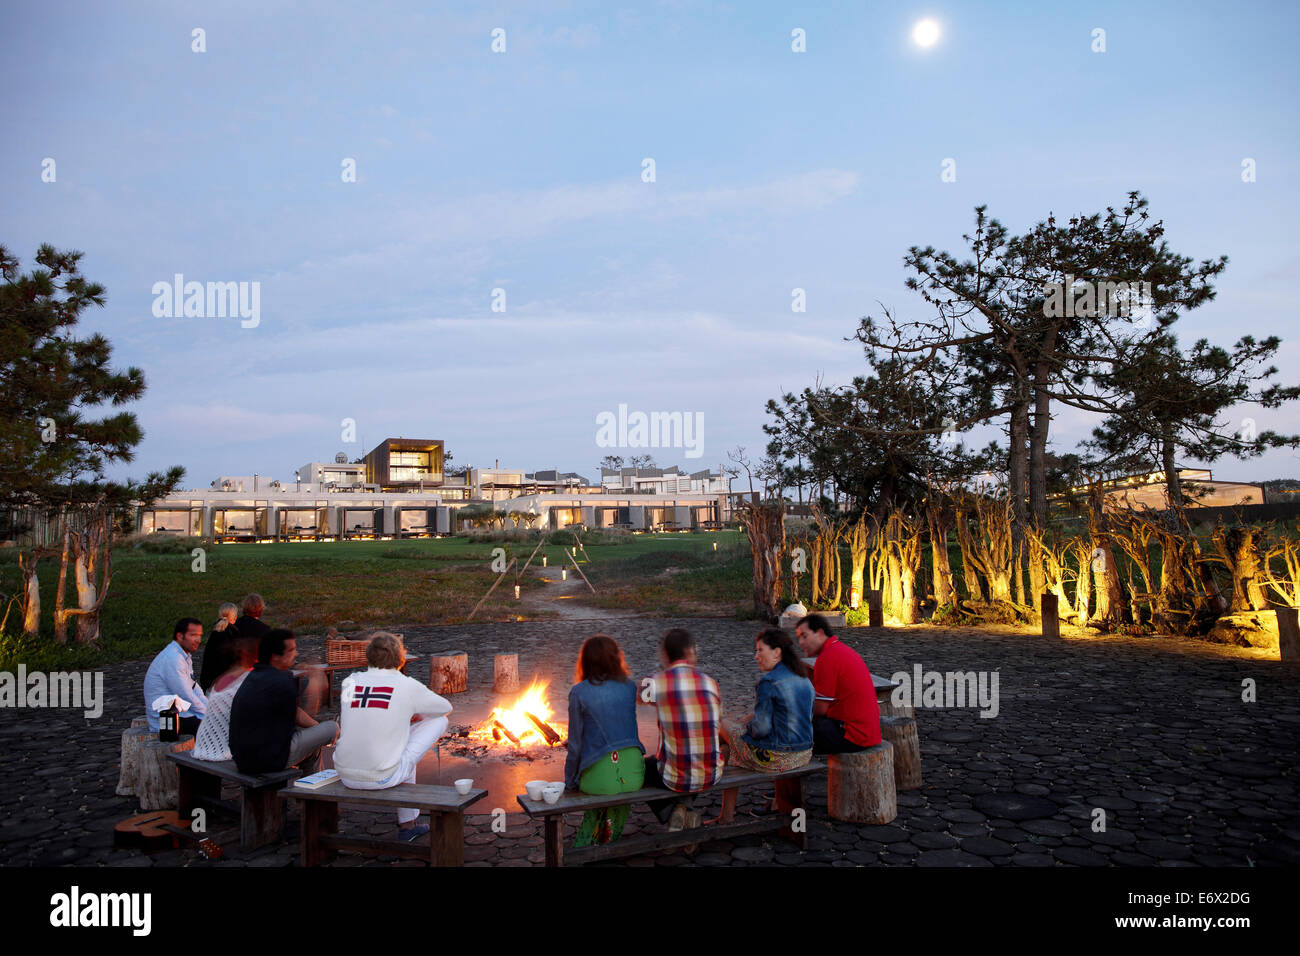 Guests at the fire called 'Ring of Fire' in the garden of Hotel Areias do Seixo, Povoa de Penafirme, A-dos - Stock Image